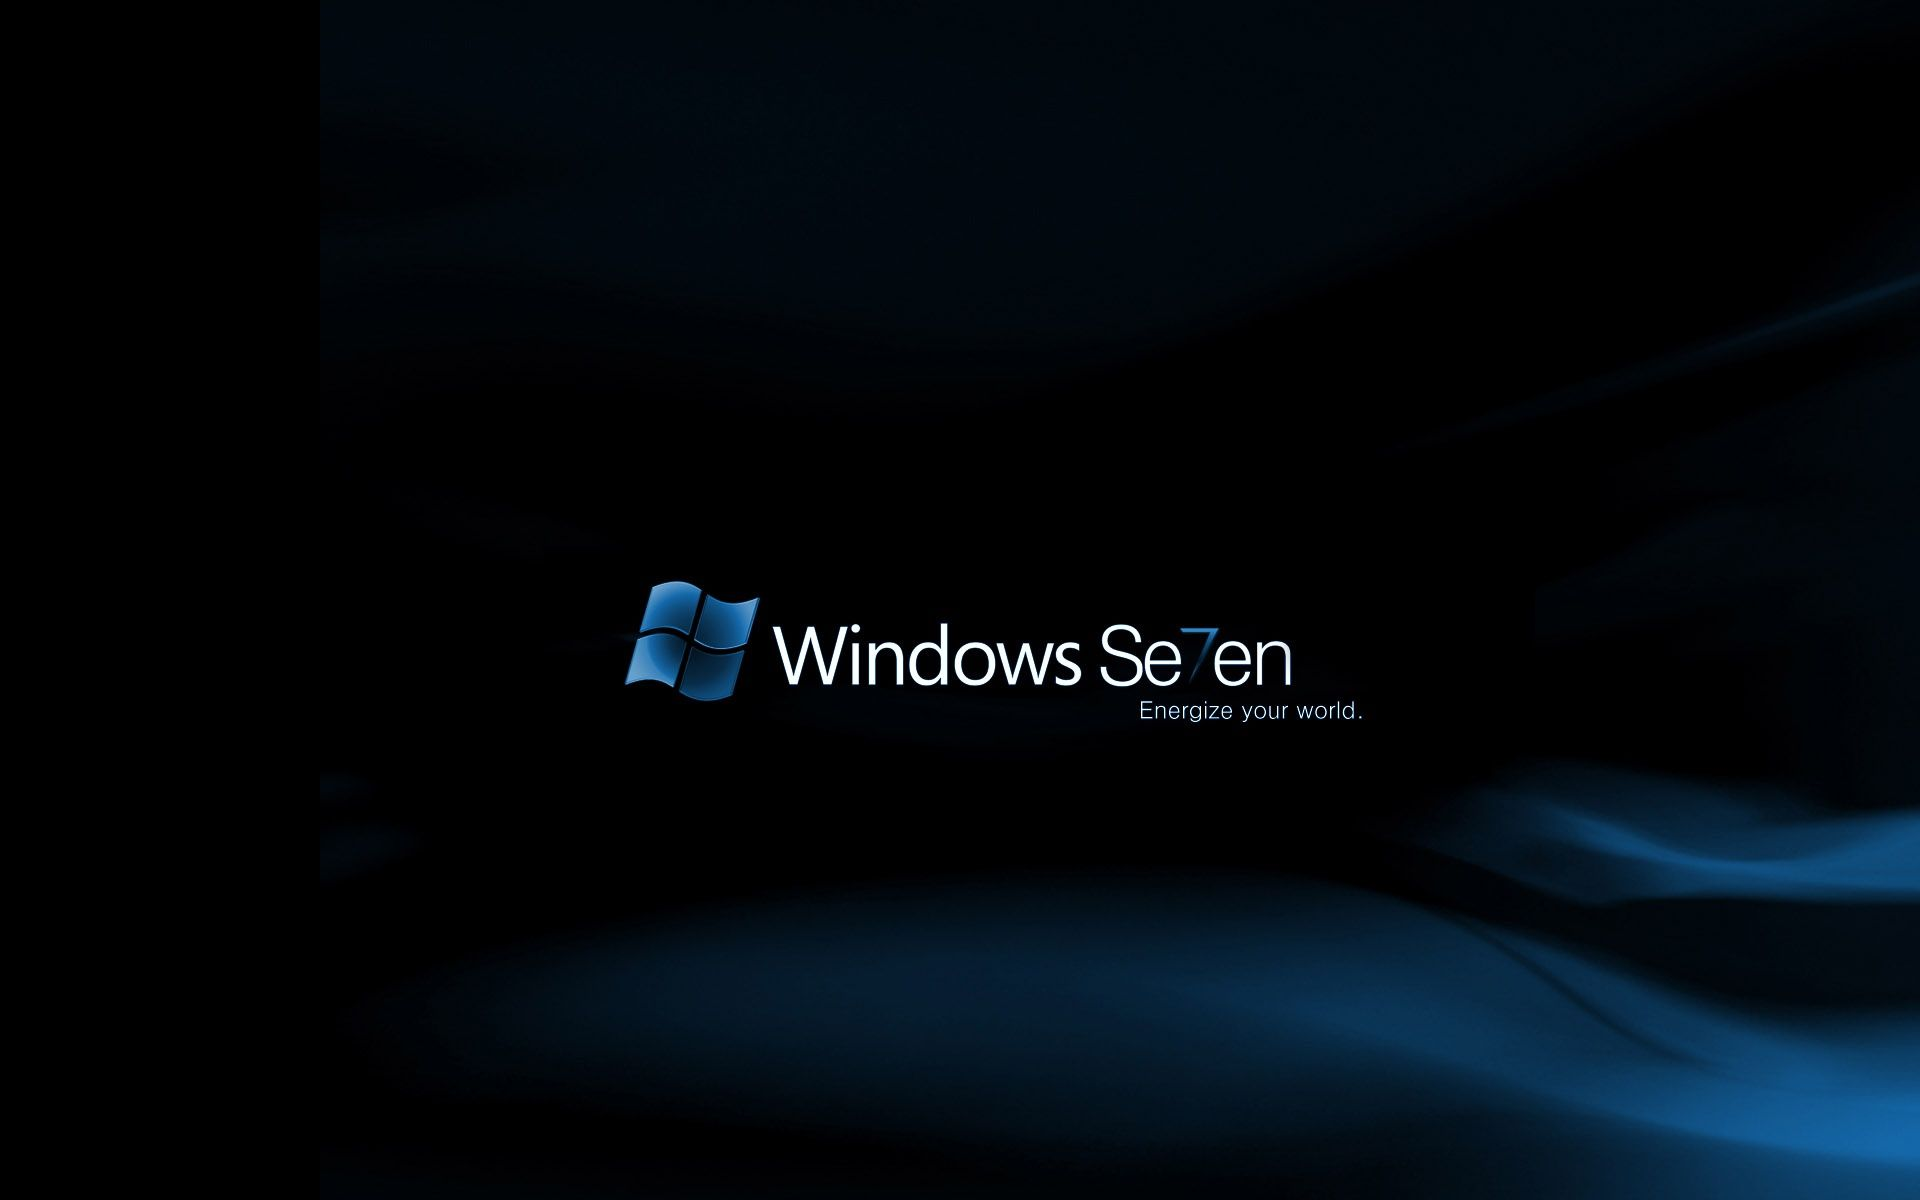 Are You Looking For Windows 7 Energize Your World Hd Wallpapers